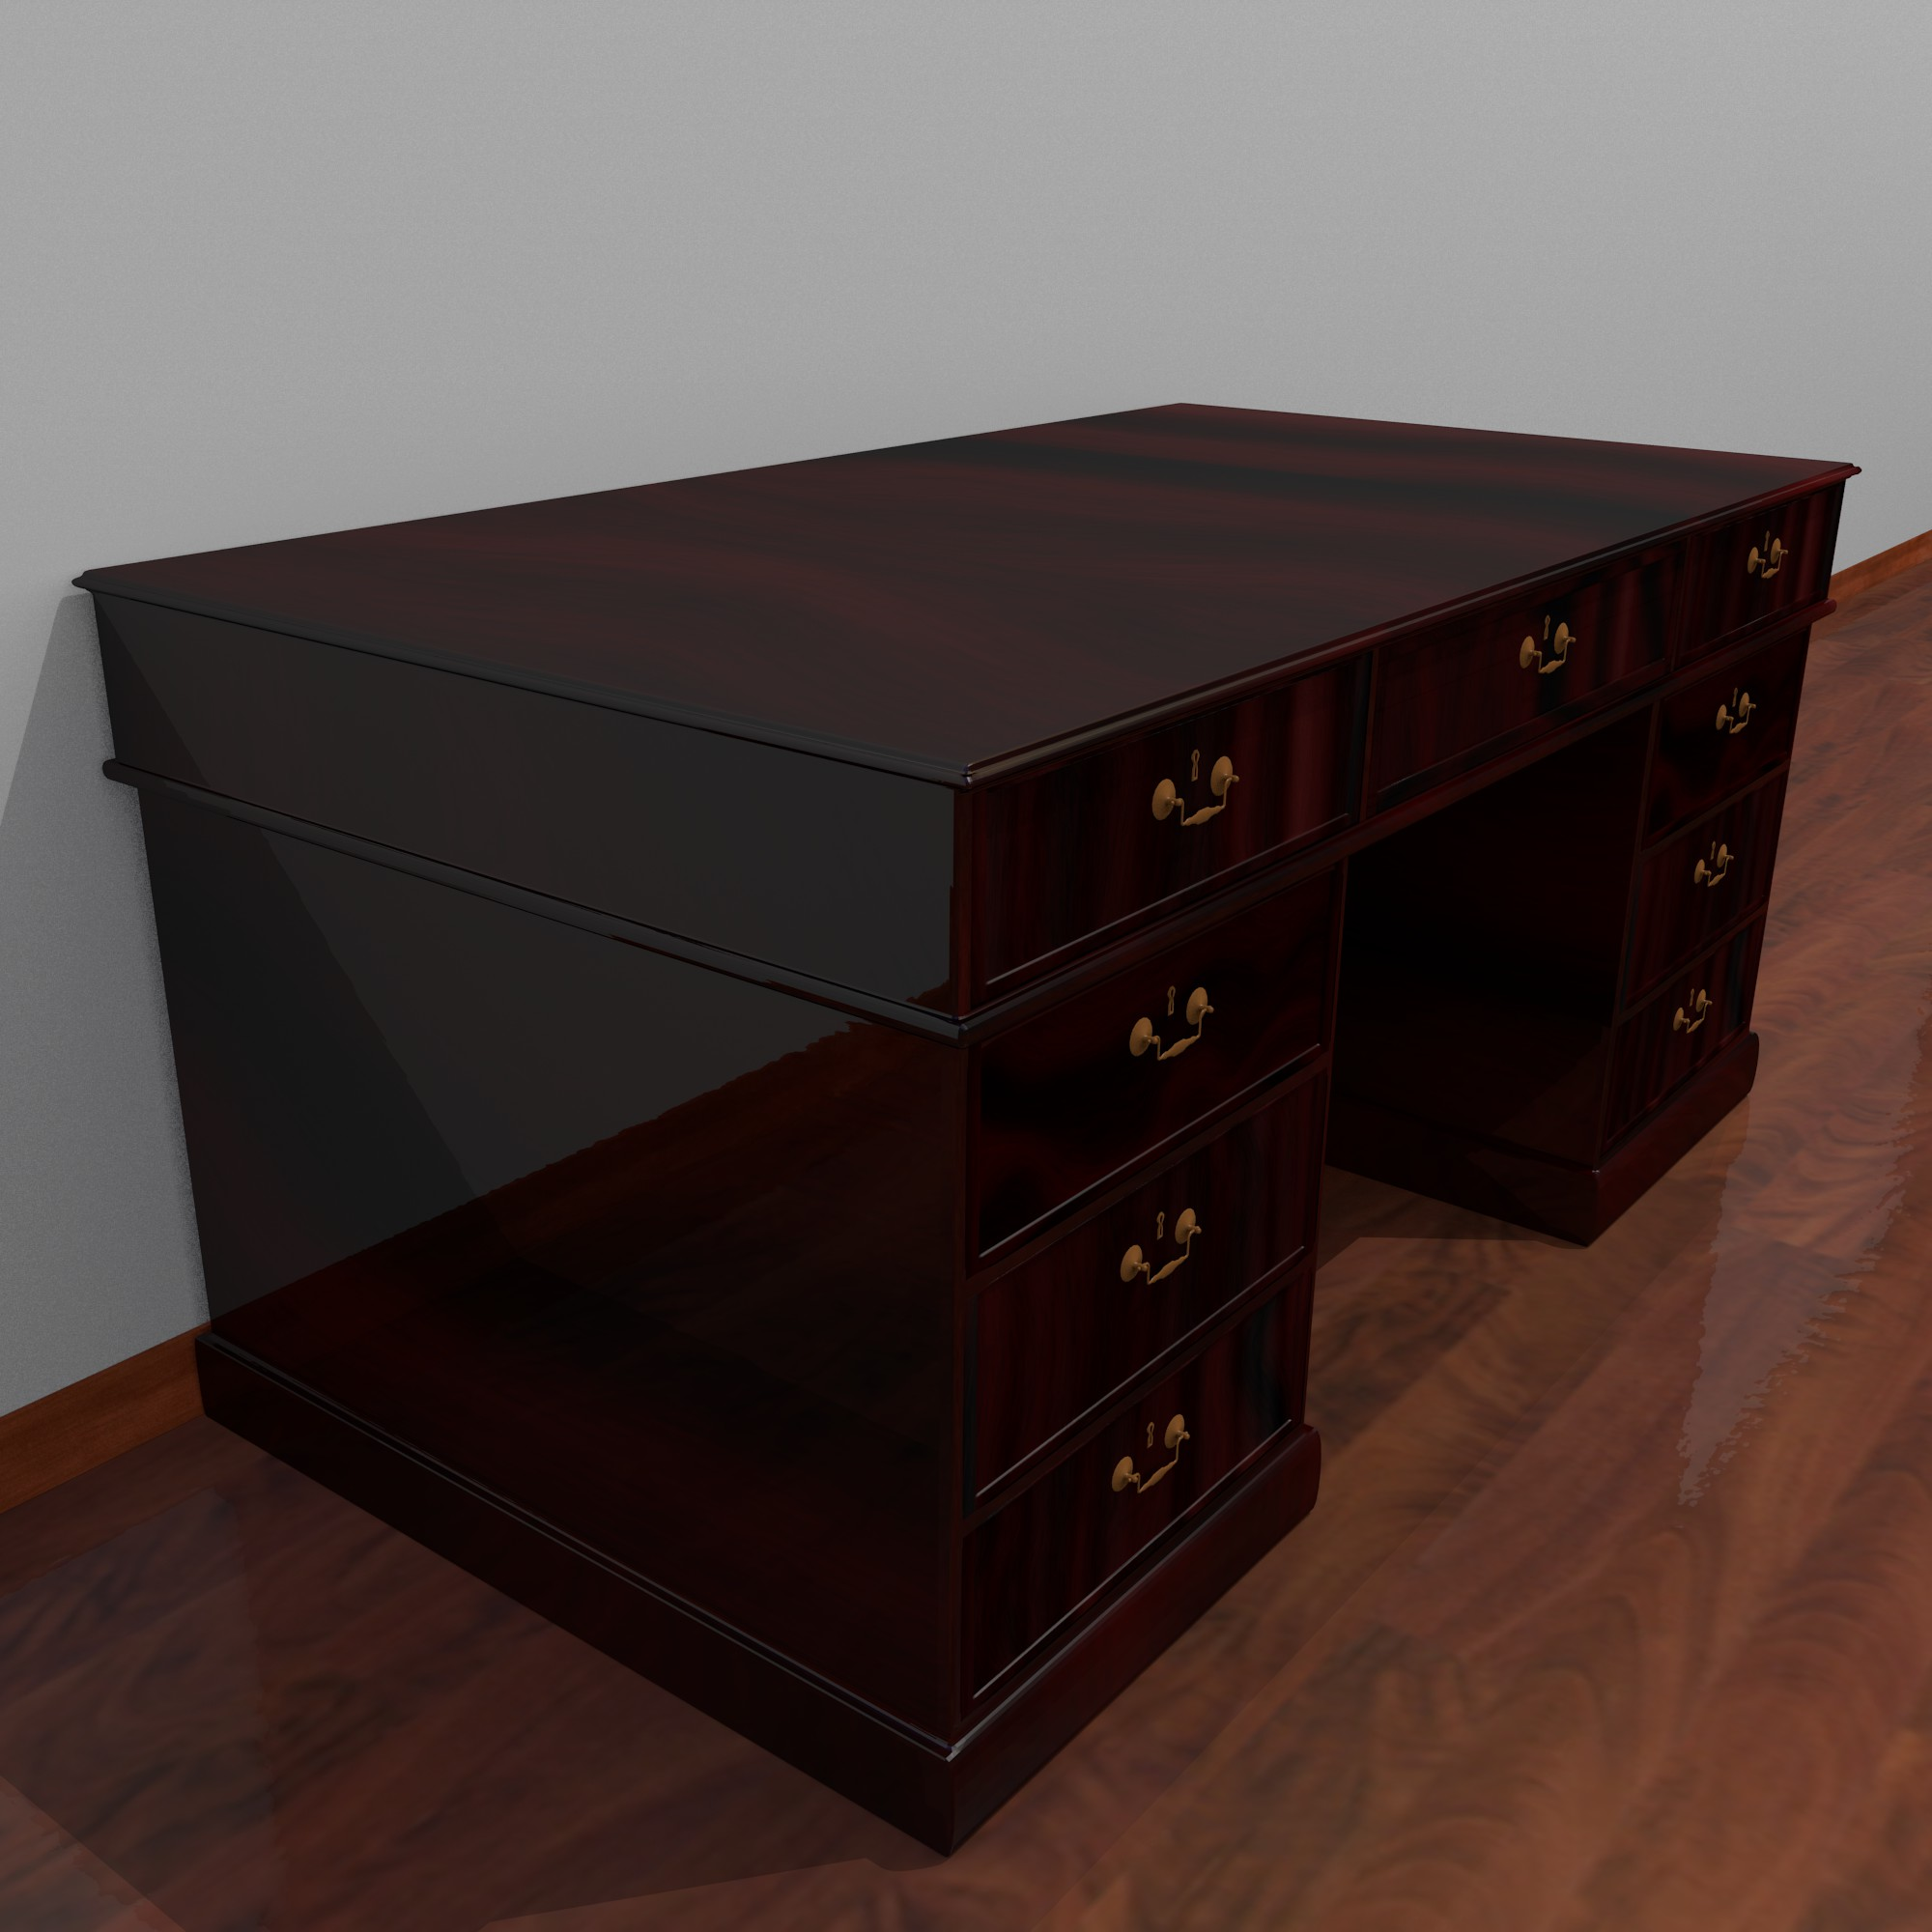 dark wood desk 3d model fbx blend dae obj 117674